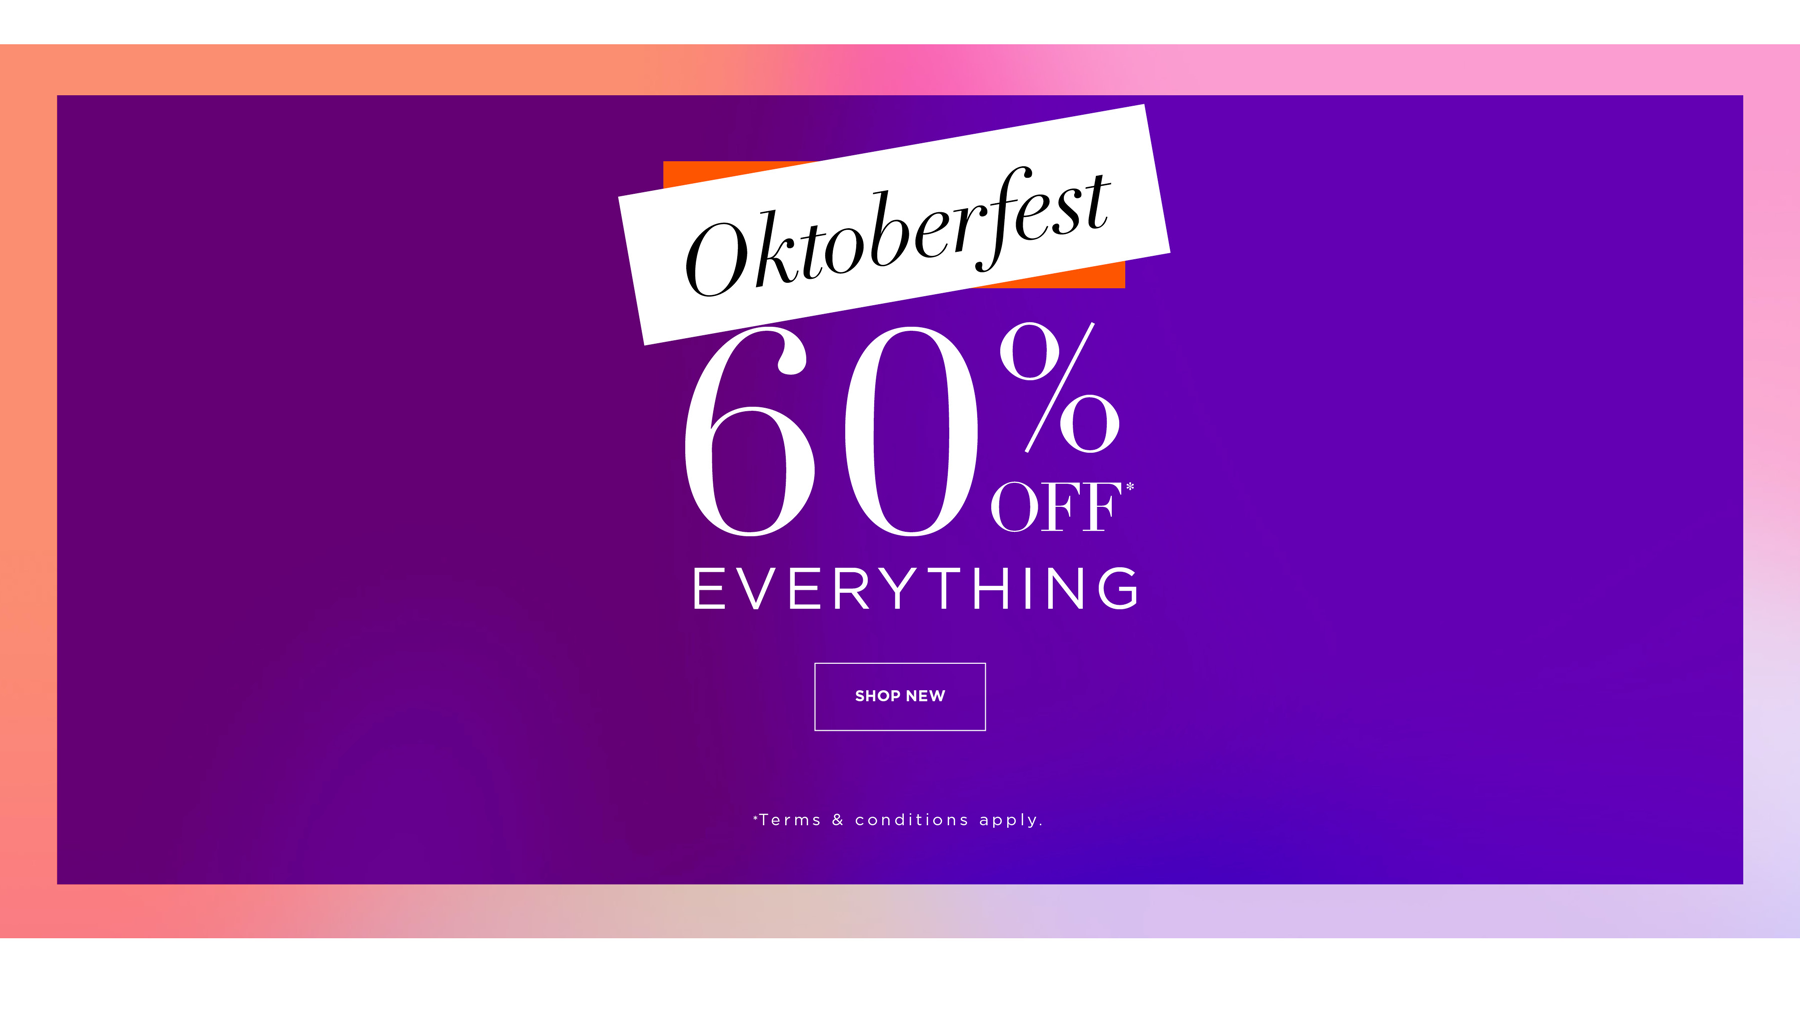 Oktoberfest - 60% Off* Everything - *Terms & Conditions - SHOP NOW